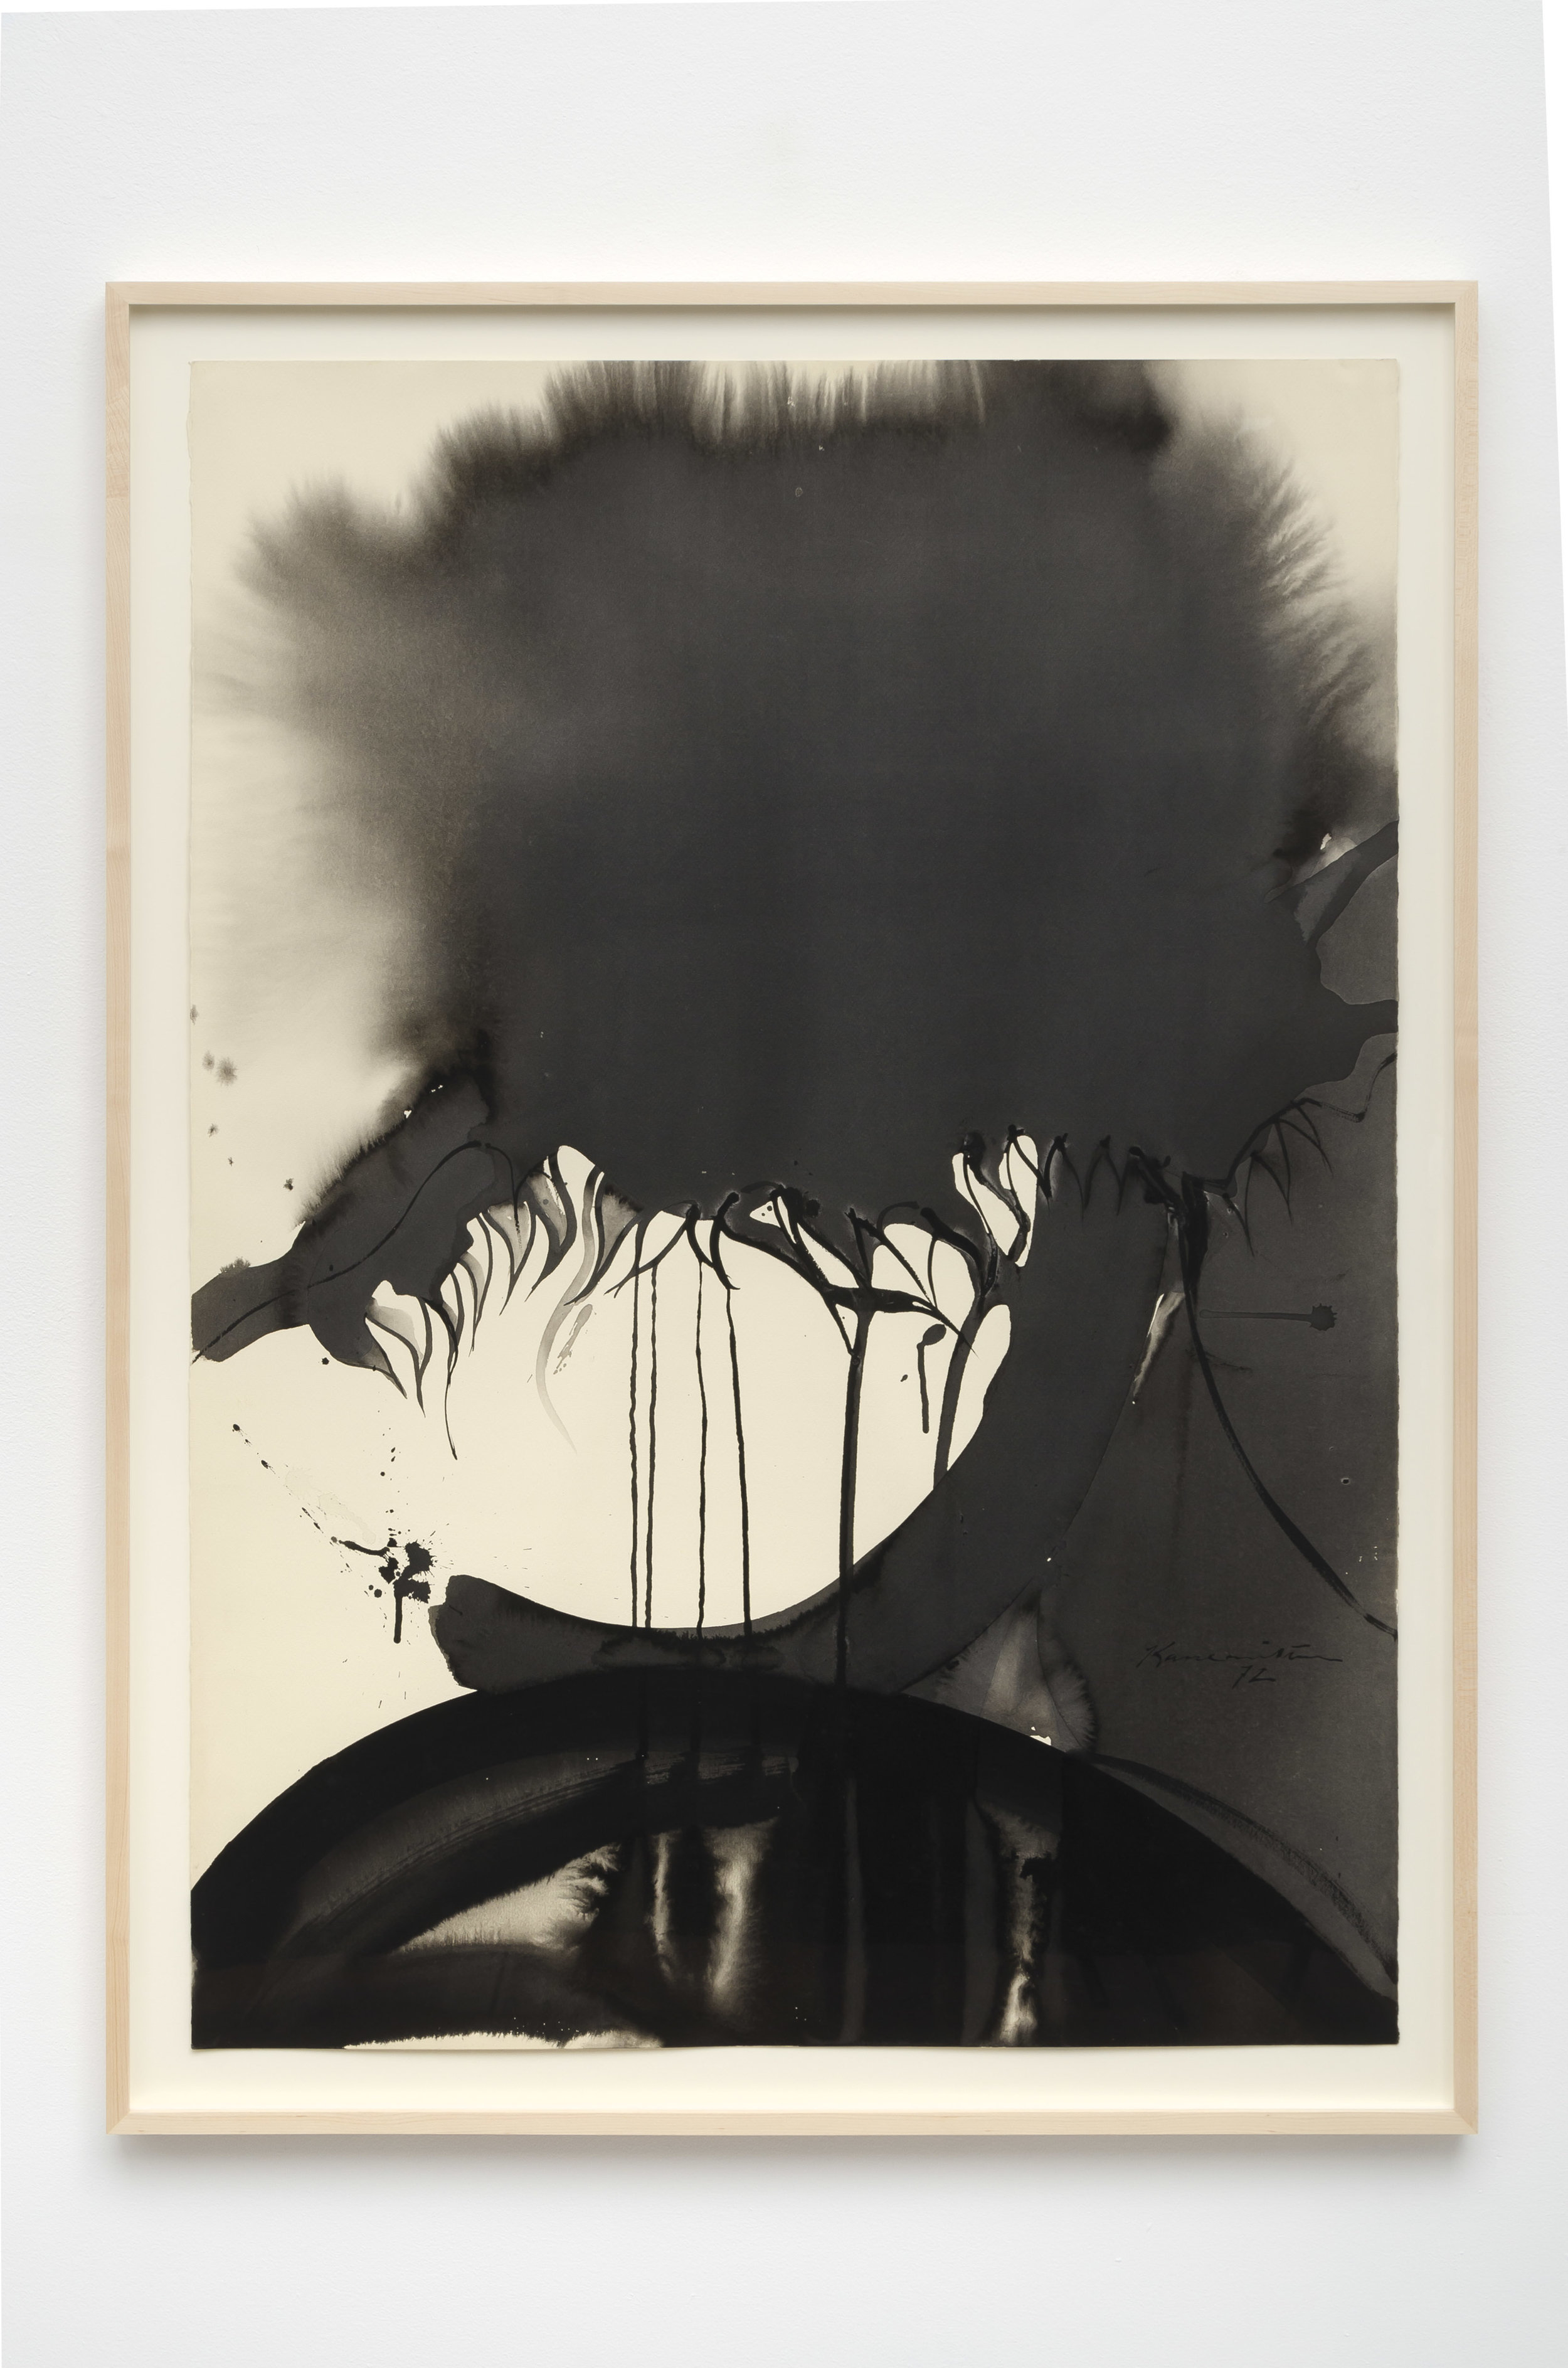 Untitled , 1972 sumi ink on paper 43 x 31 1/4 inches; 109.2 x 79.4 centimeters